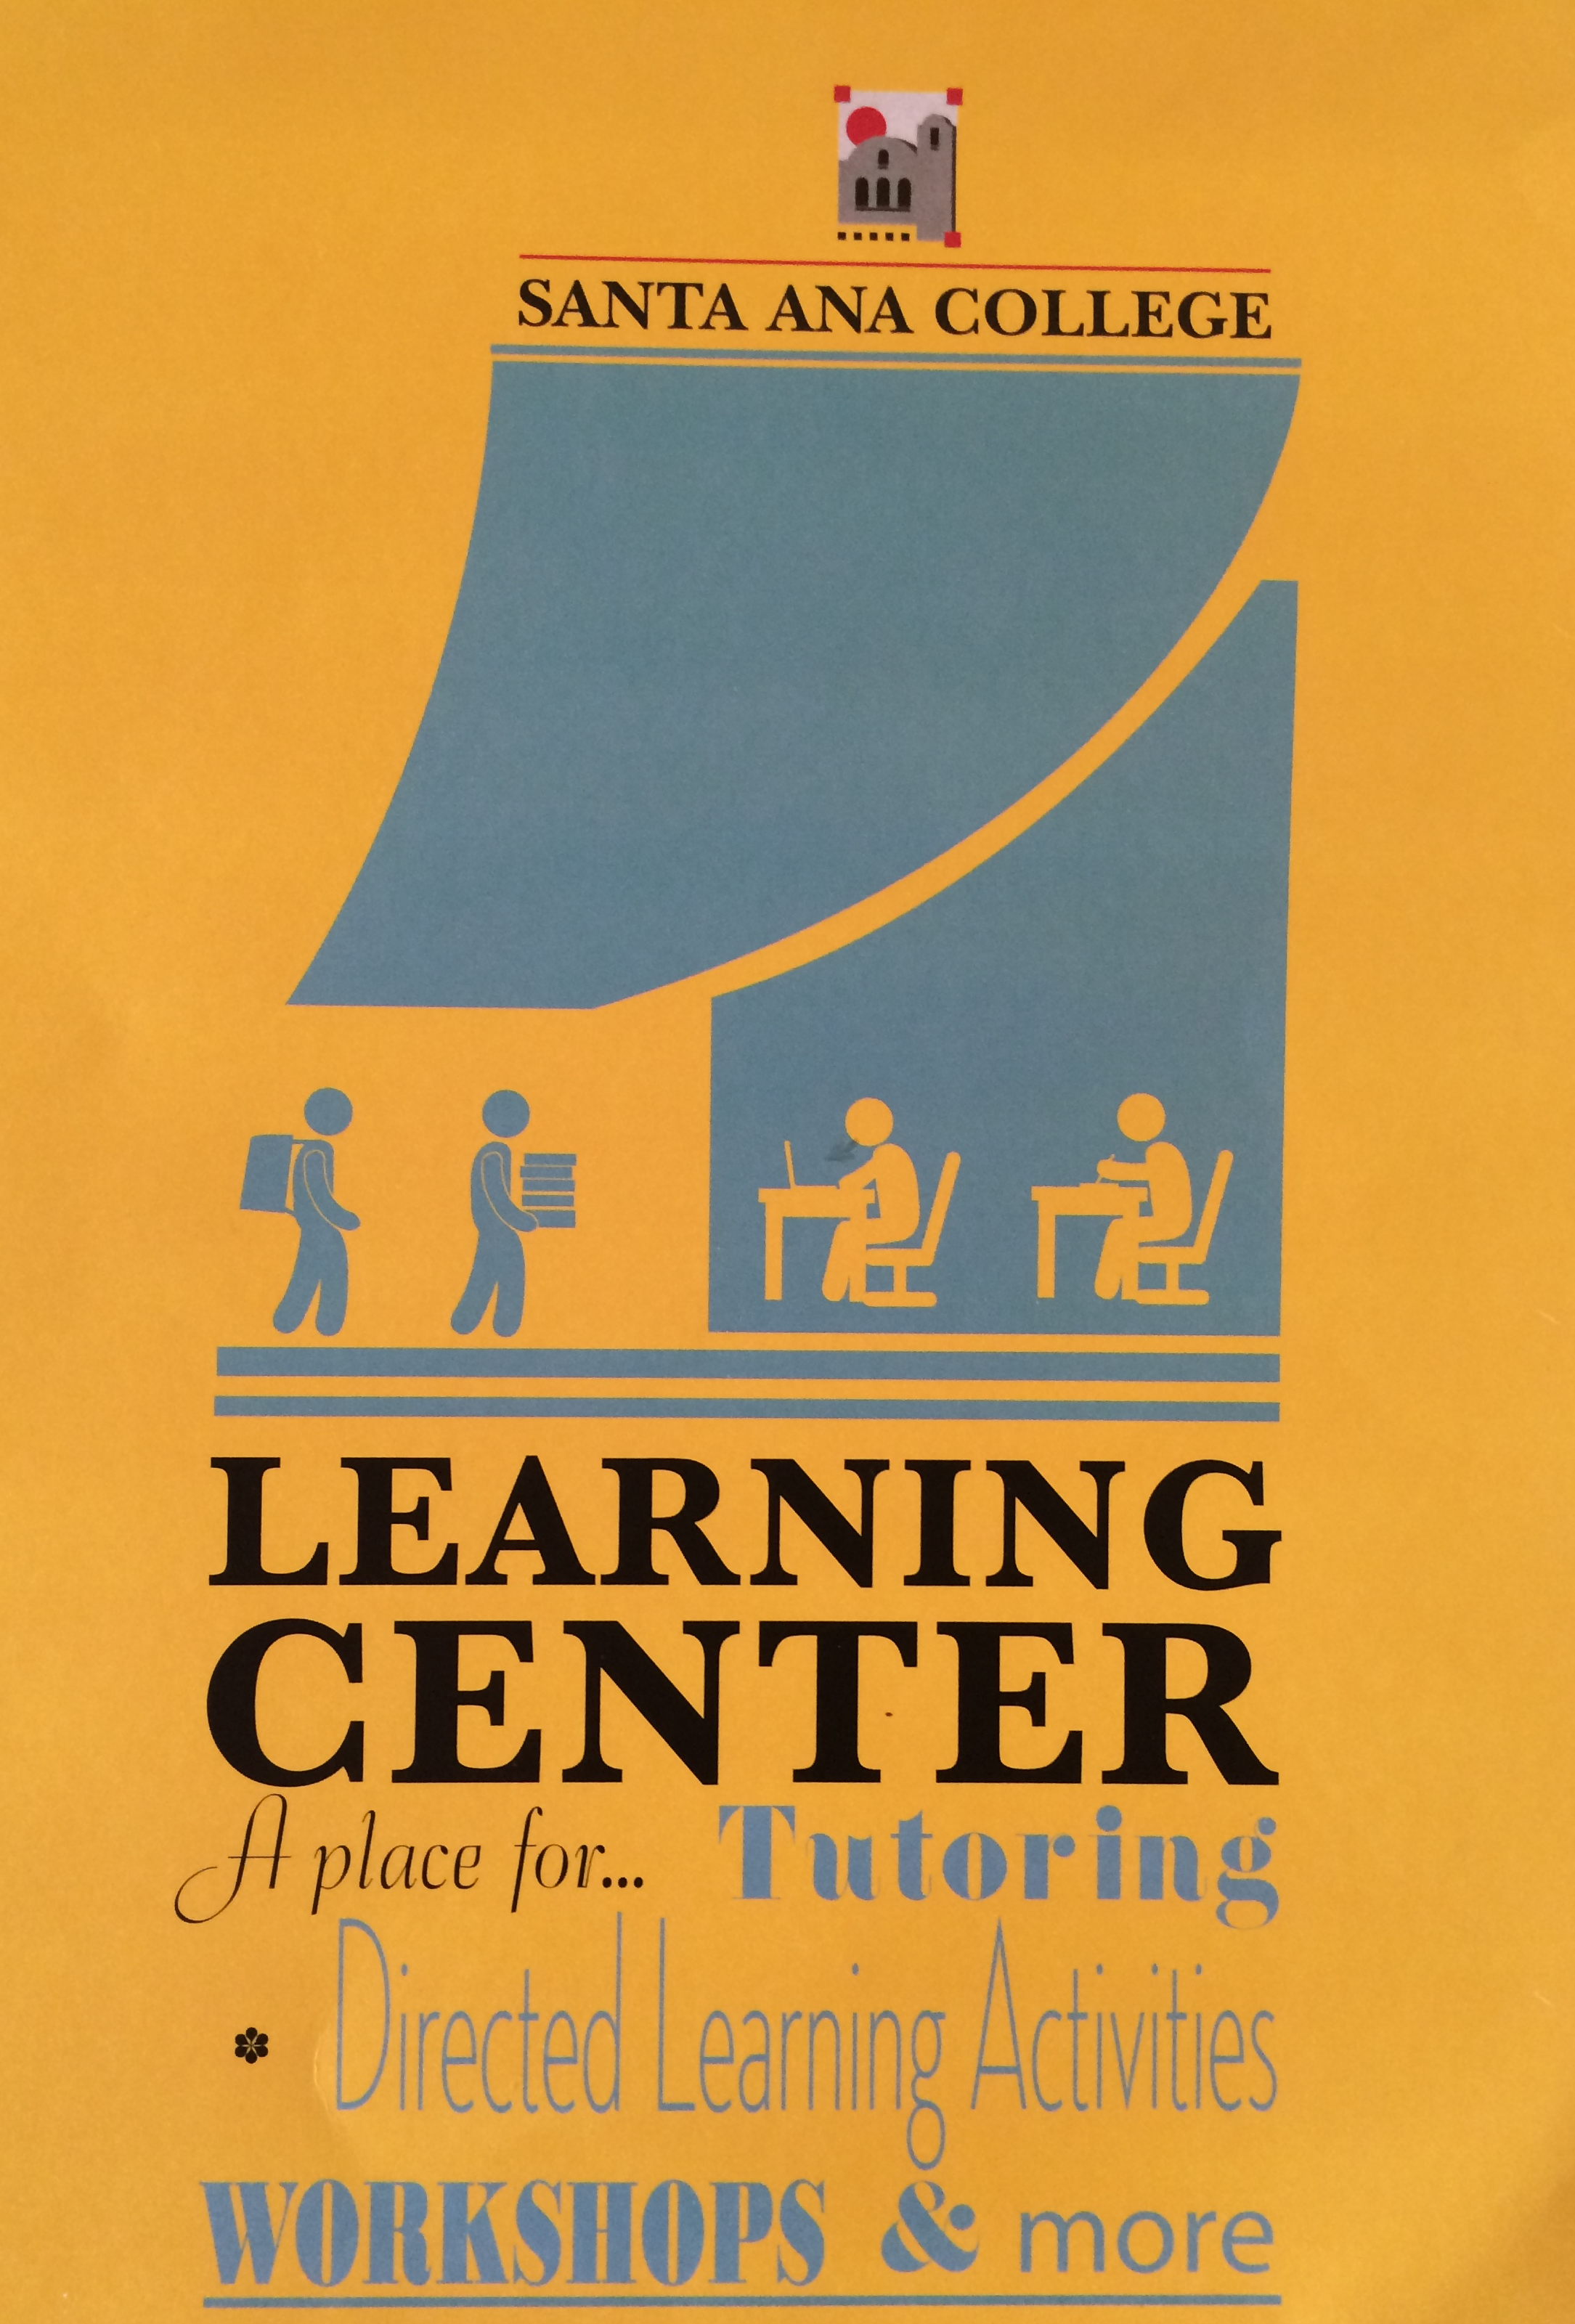 learning center2.png